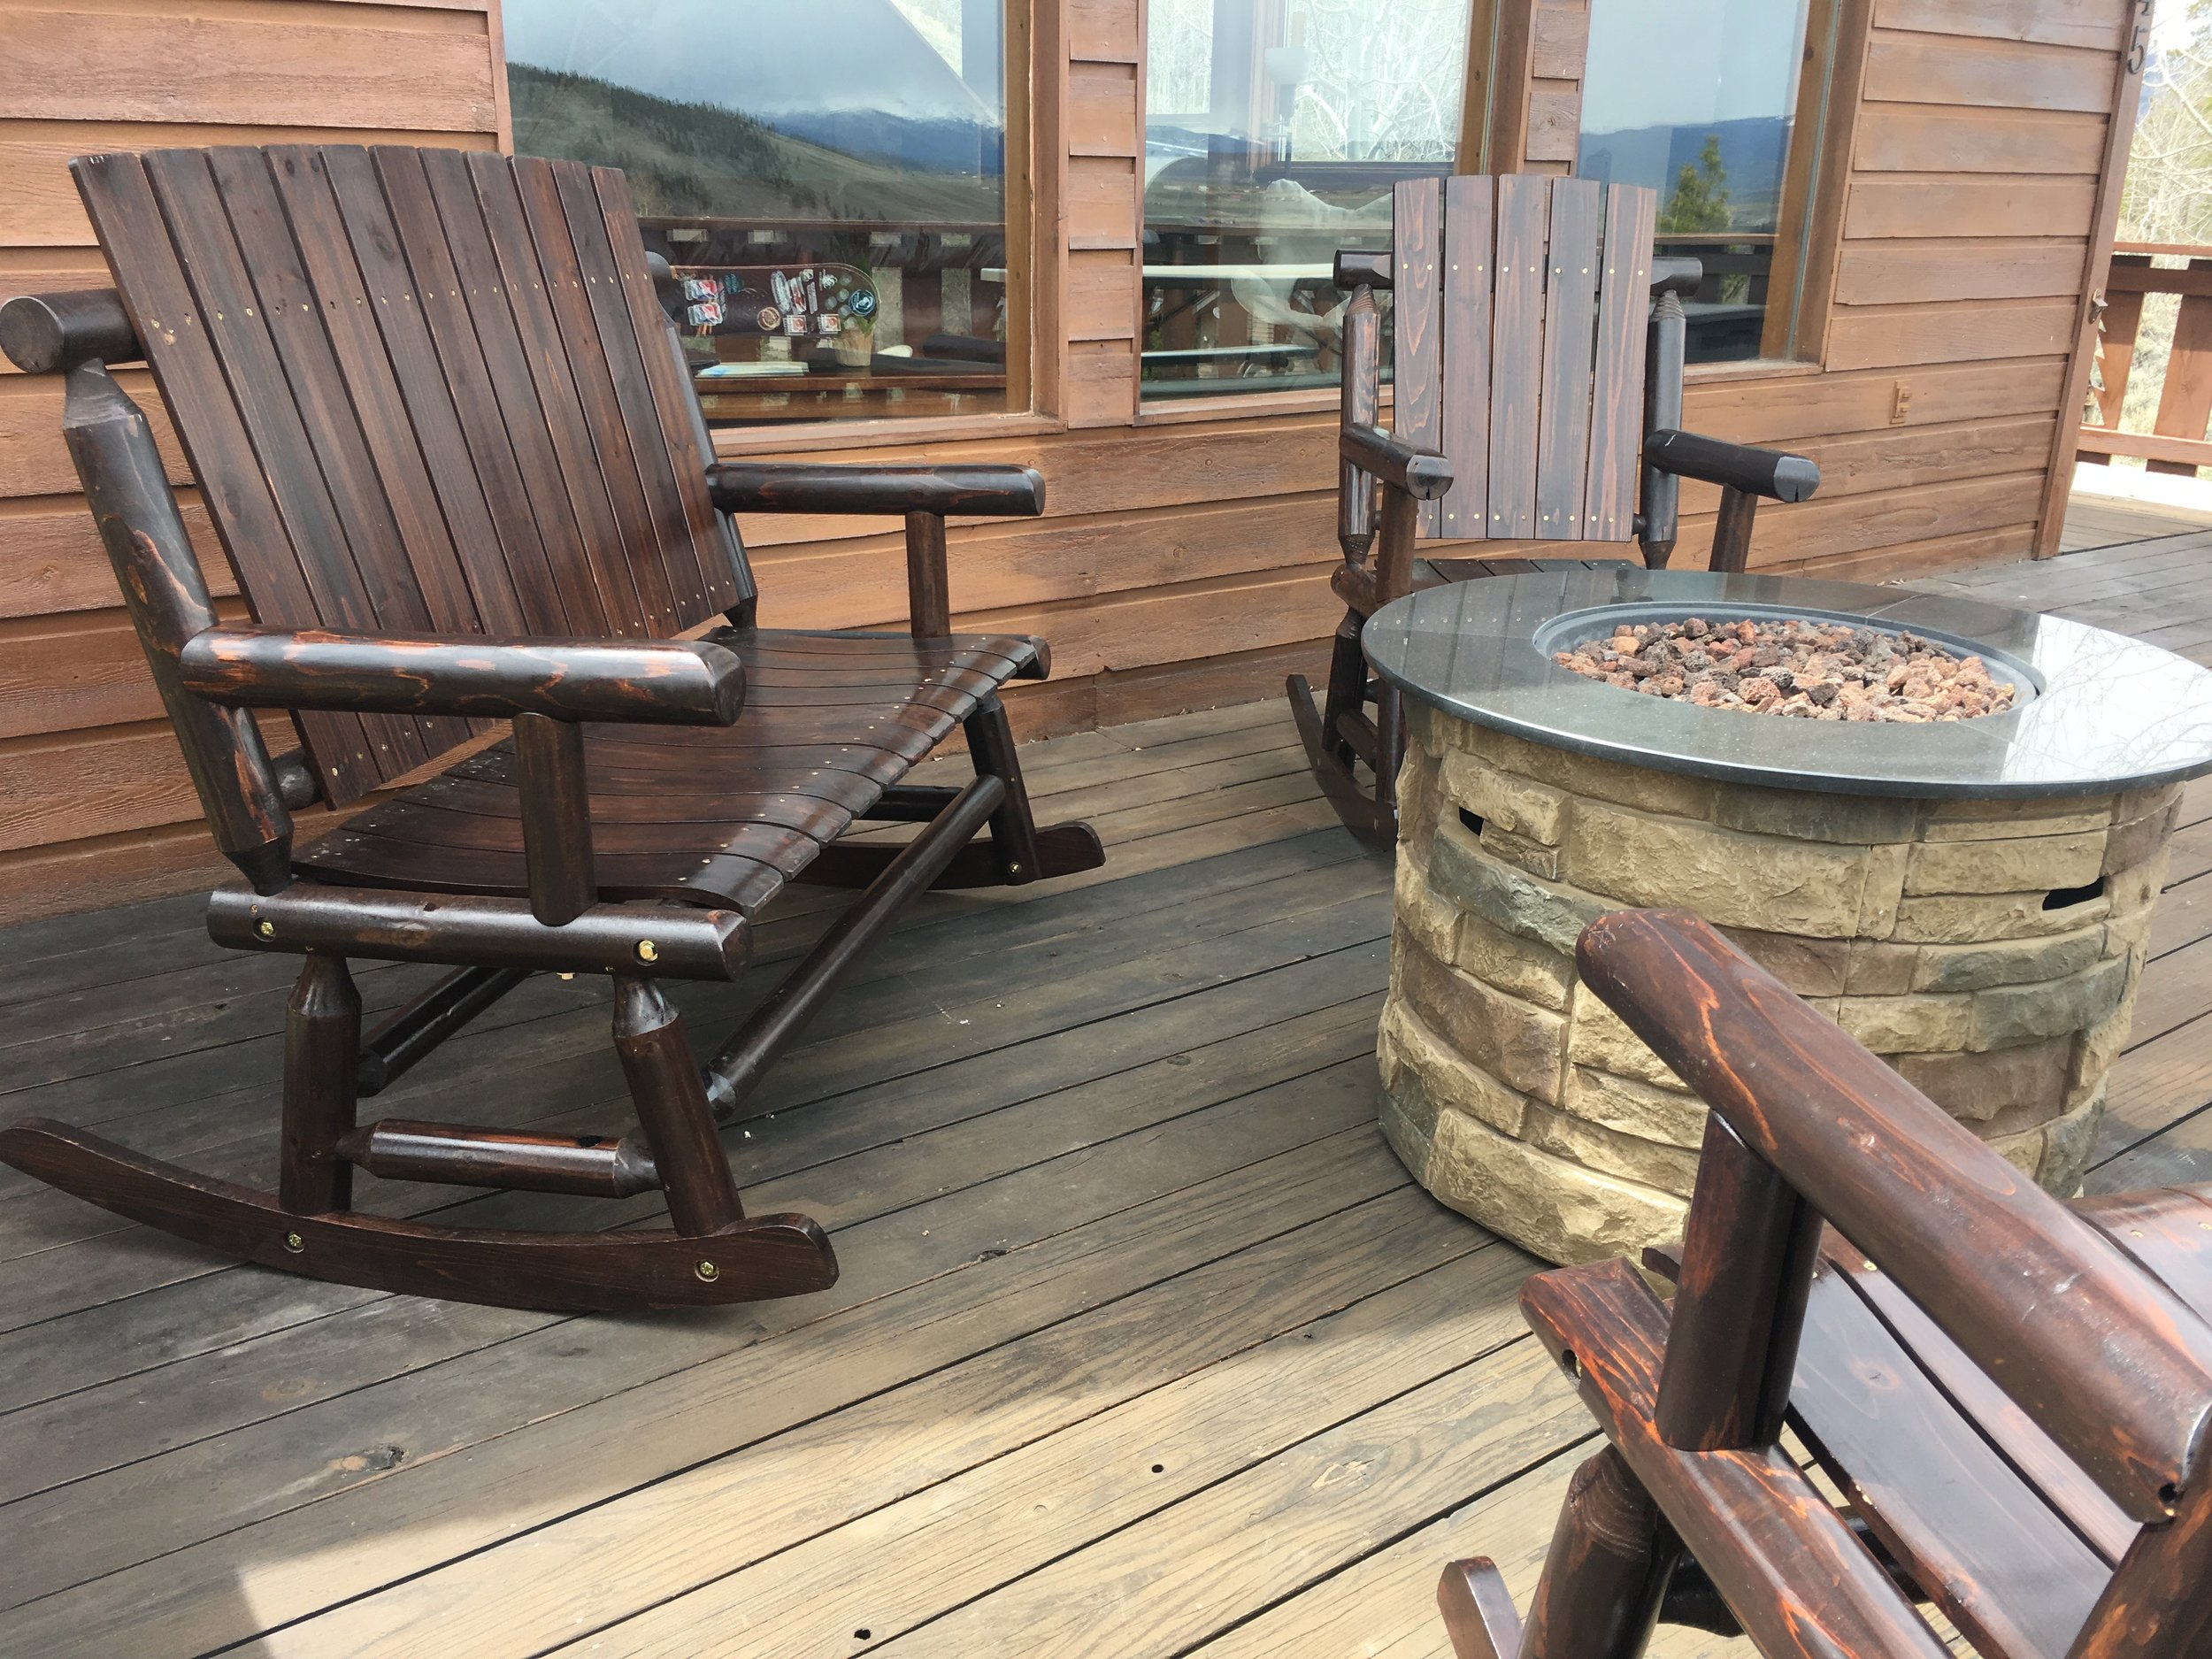 Deck with fire table and log furniture and picnic table